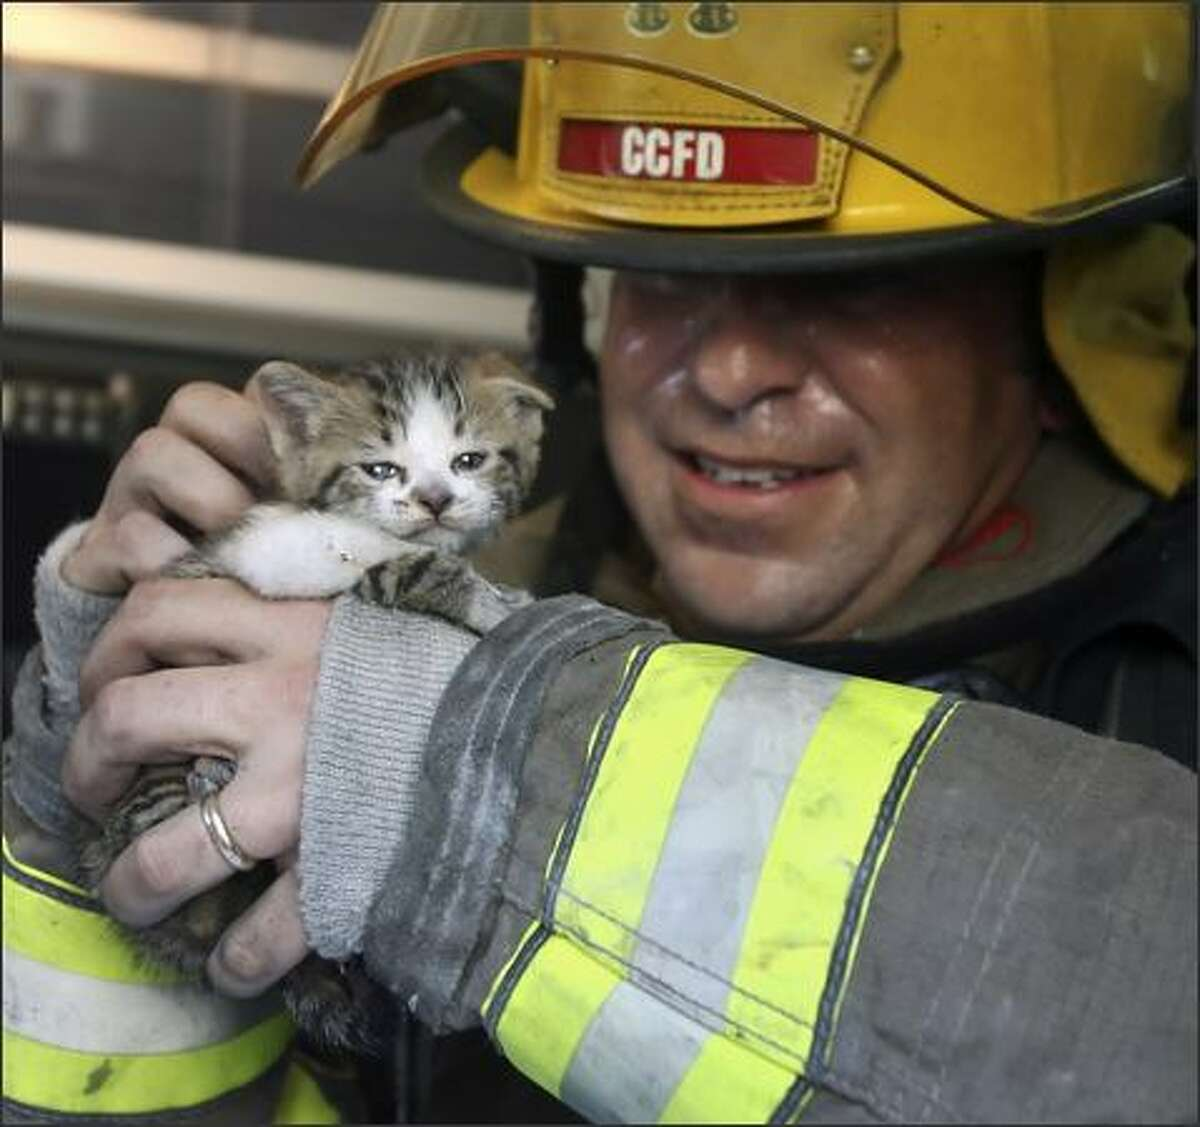 Corpus Christi Fire Department Captain John Leahey examines one of two cats rescued from a small duplex fire, in Corpus Christi, Texas. The kitten had minor injuries, including singed whiskers. (AP Photo/Corpus Christi Caller-Times, Rachel Denny Clow)